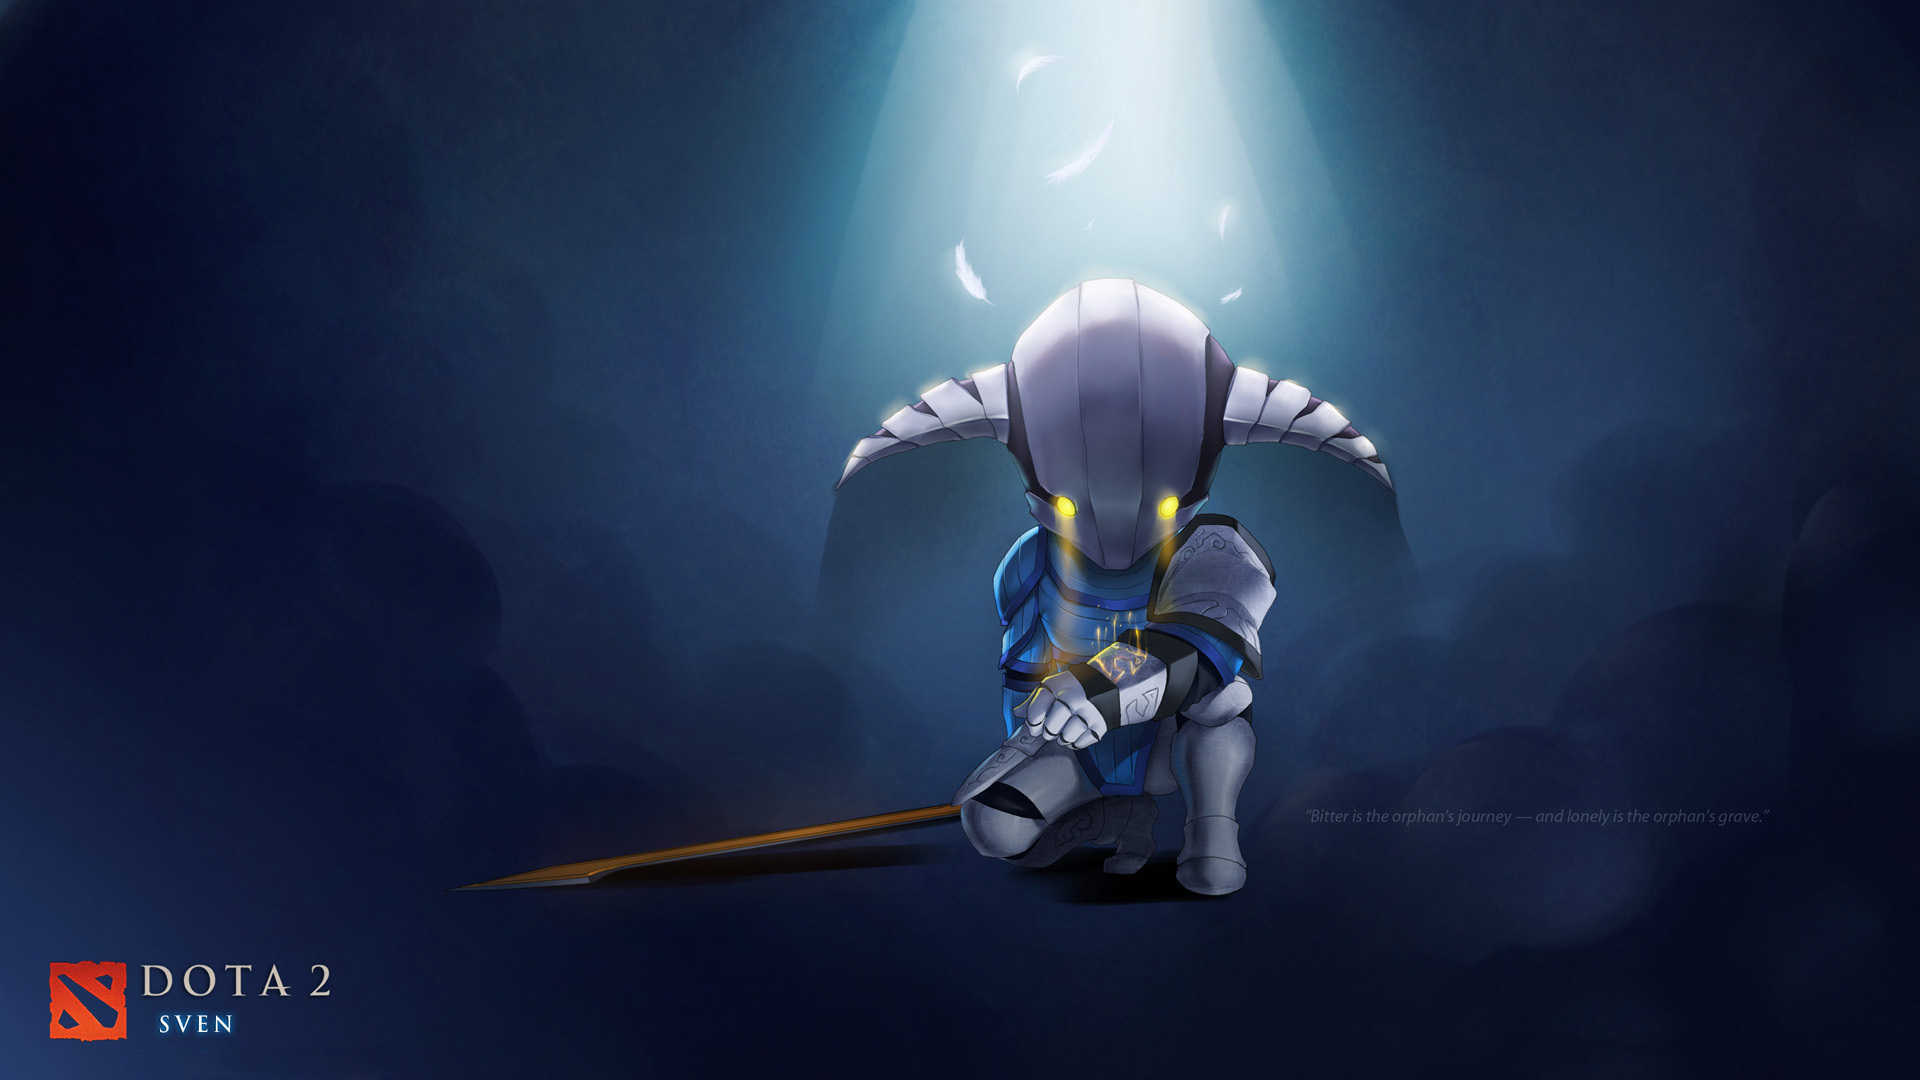 Dota 2 Wallpaper – Are Incredible These